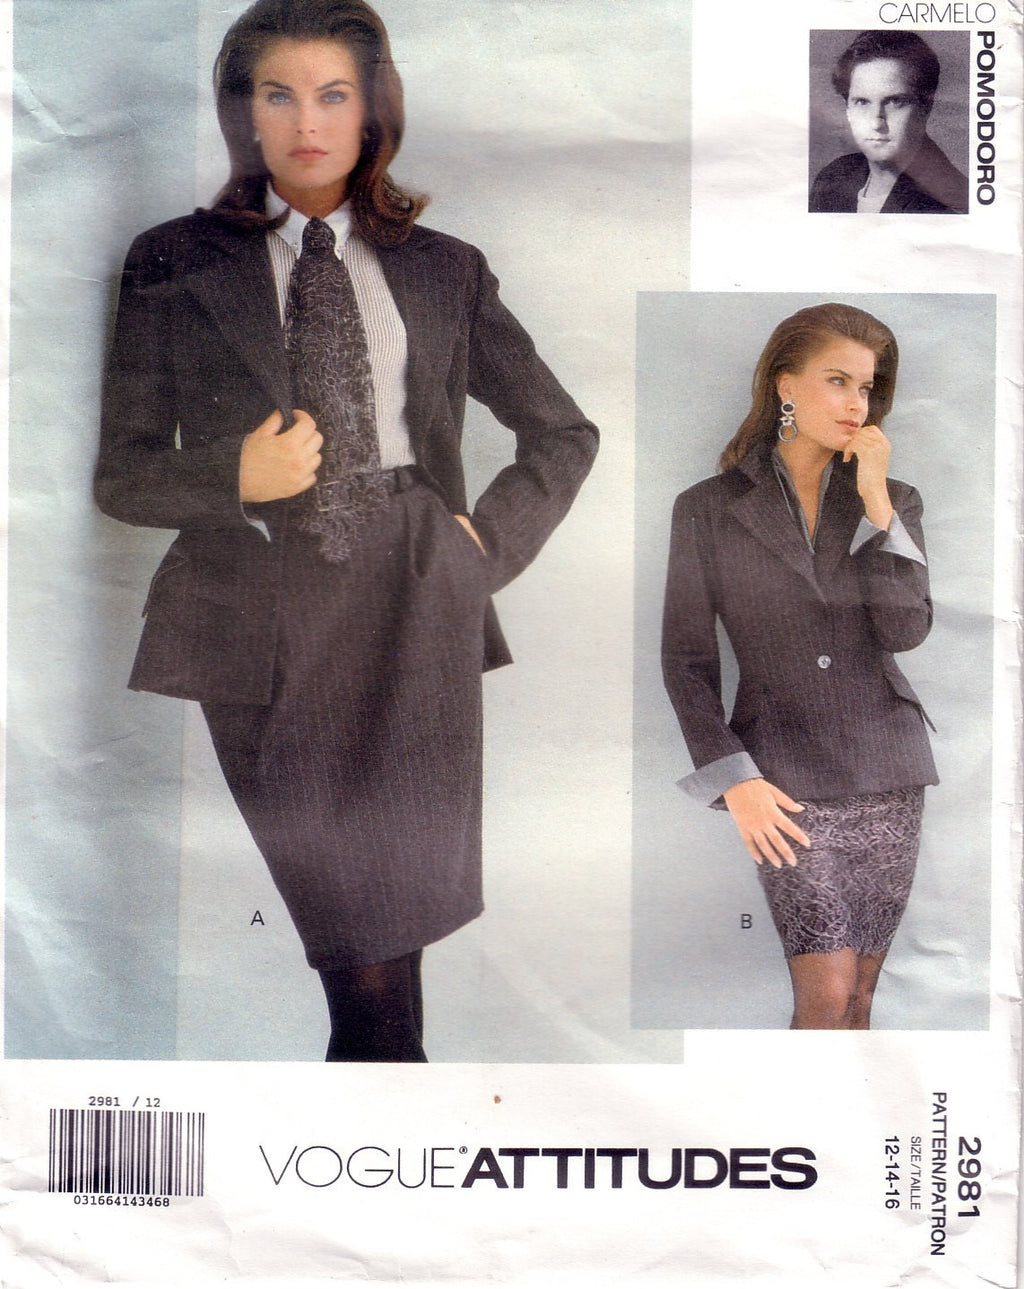 Vintage Vogue Attitudes 2981, Skirt and Jacket, Designer Carmelo Pomodoro, Size 12, 14, 16 - Couture Service  - 1